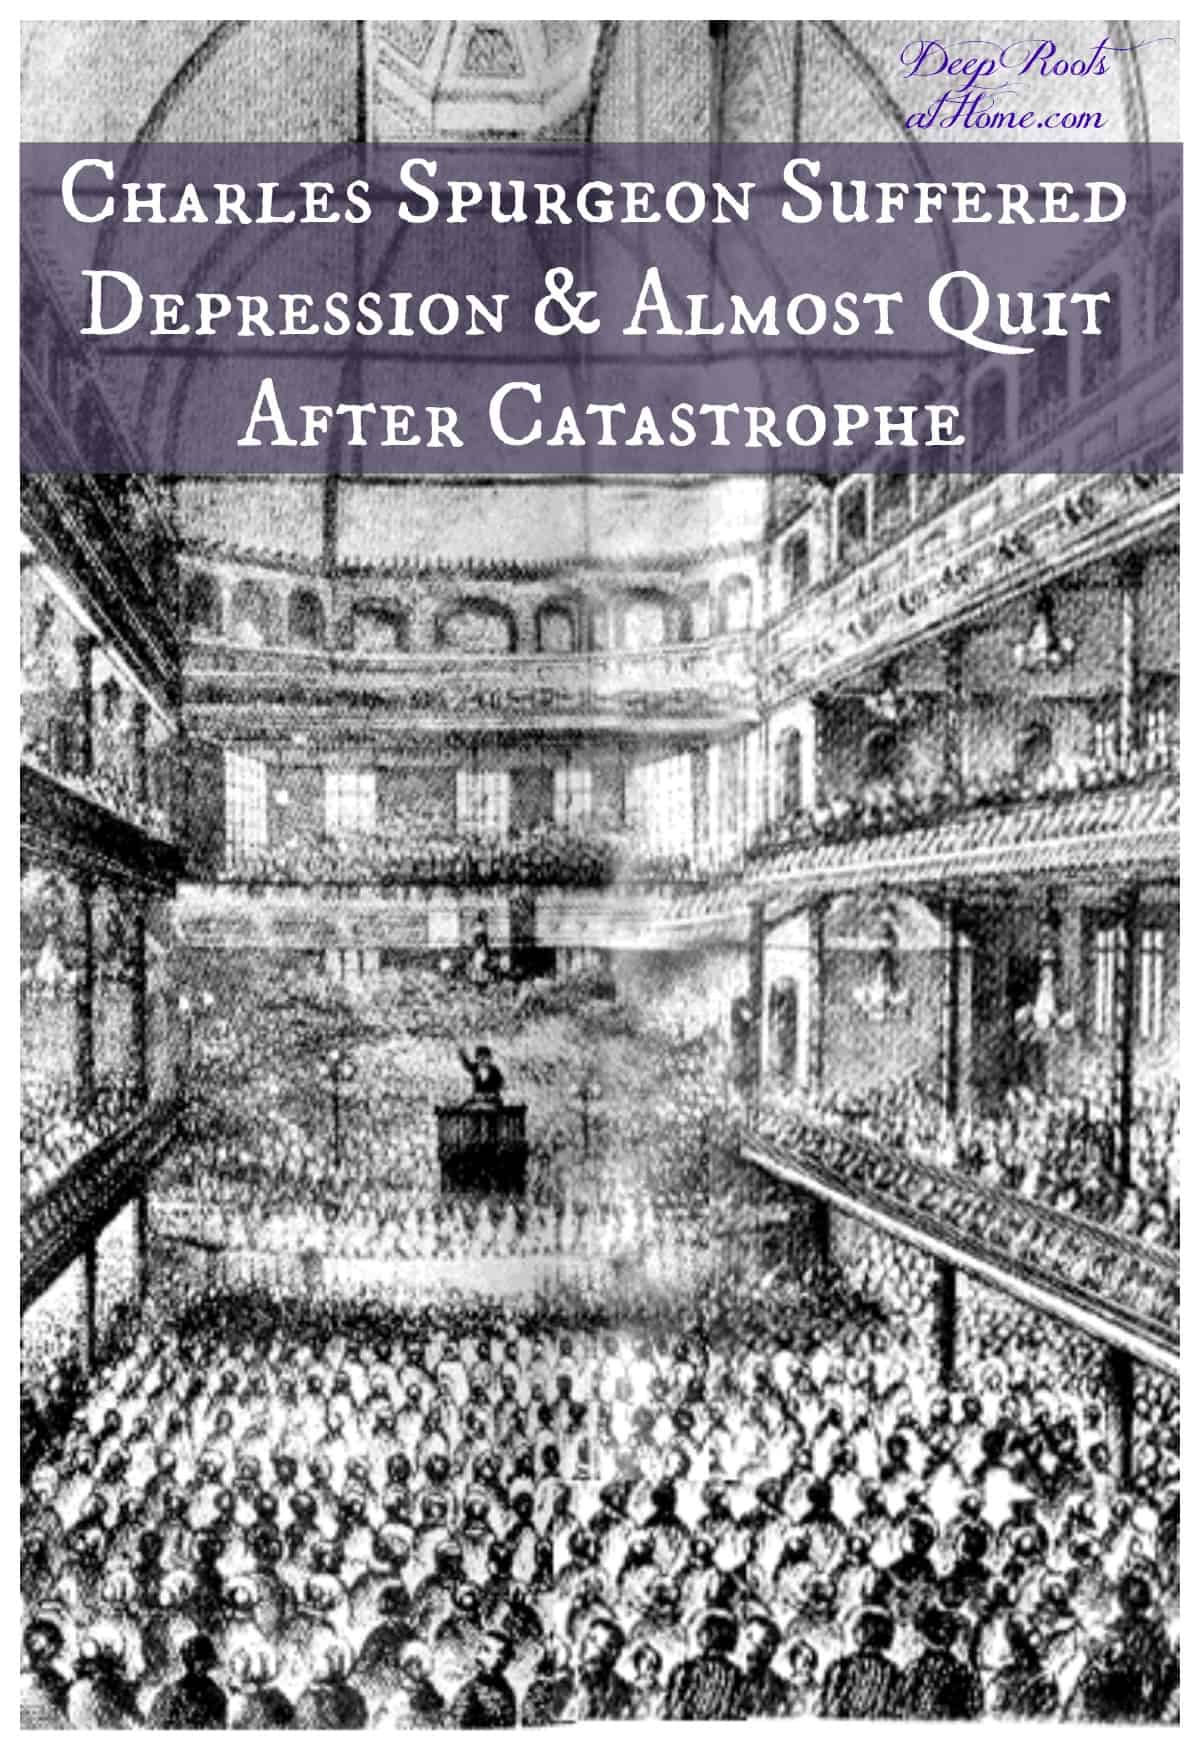 Spurgeon Suffered Depression & Almost Quit After Catastrophe. Pin image. Spurgeon preaching to 12,000.